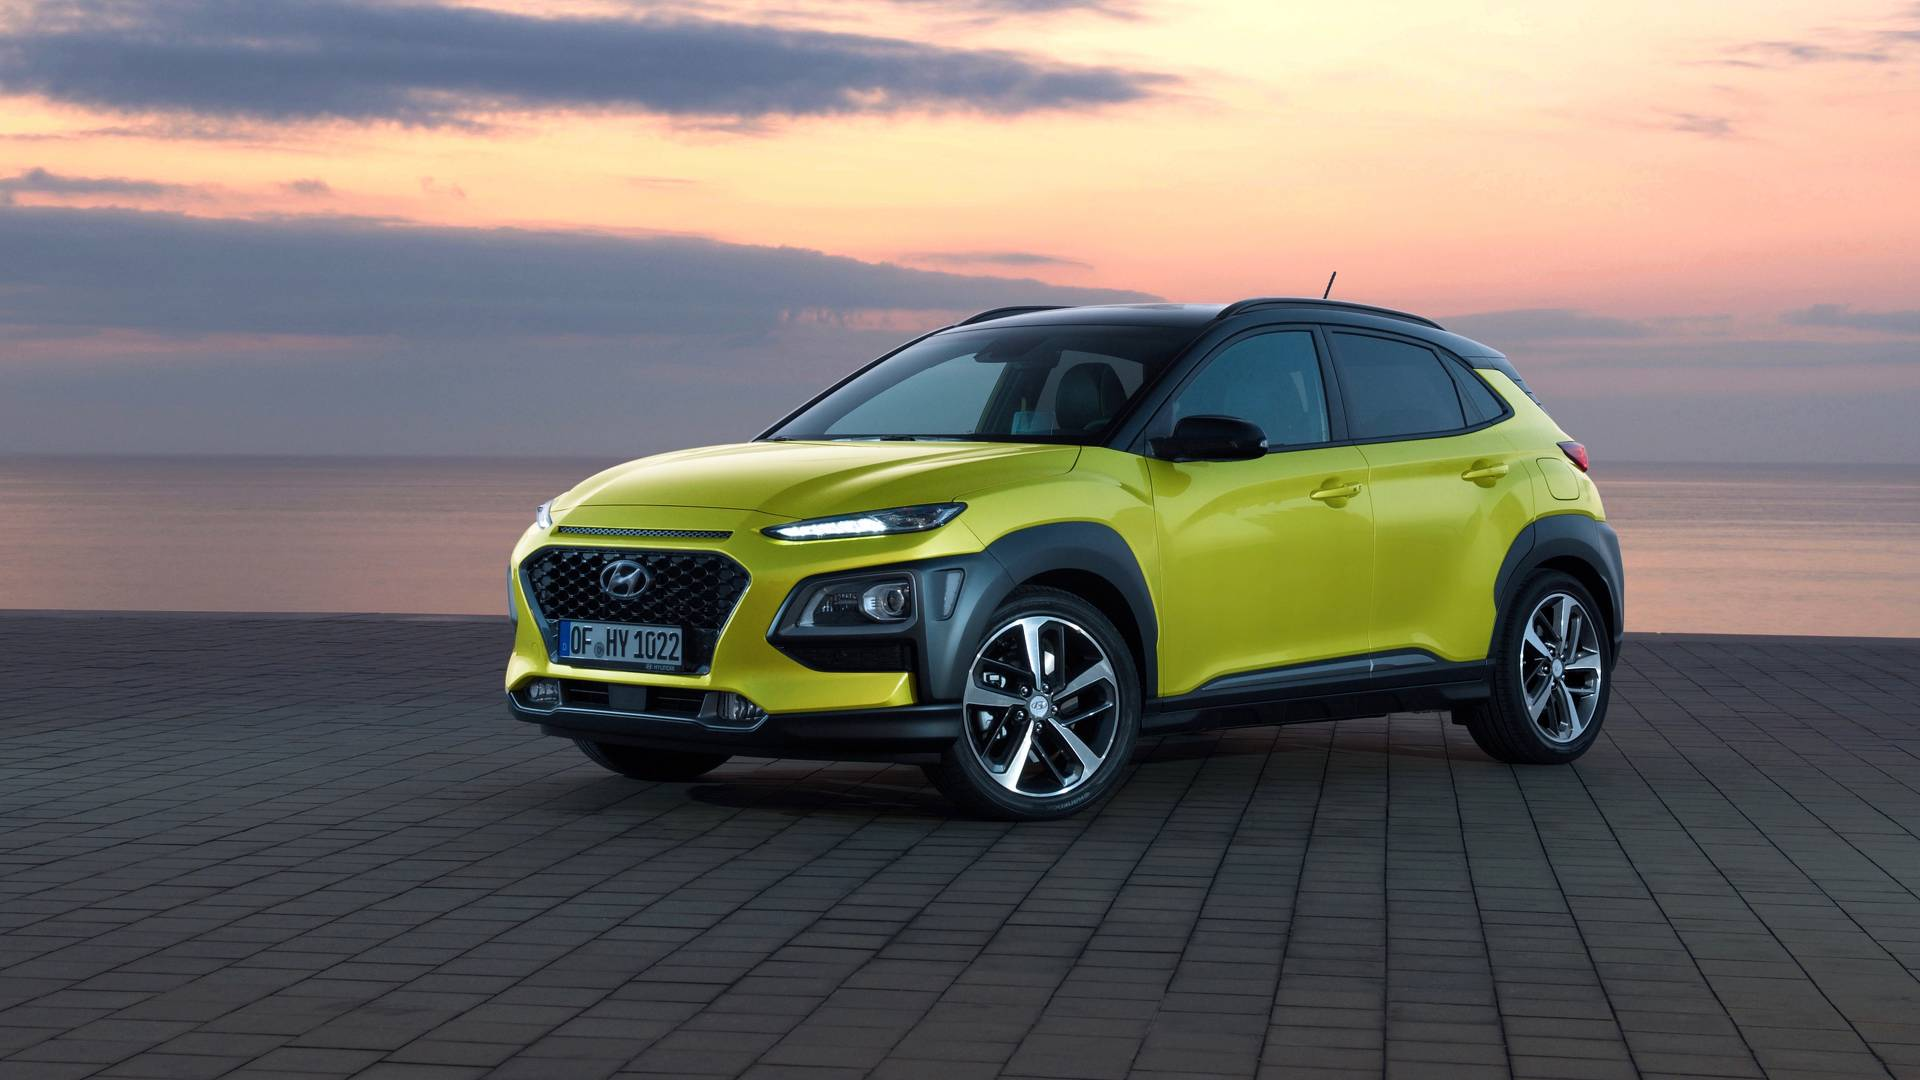 2017 Hyundai Kona 1 0 T-GDi first drive: Striking looks, limited engines